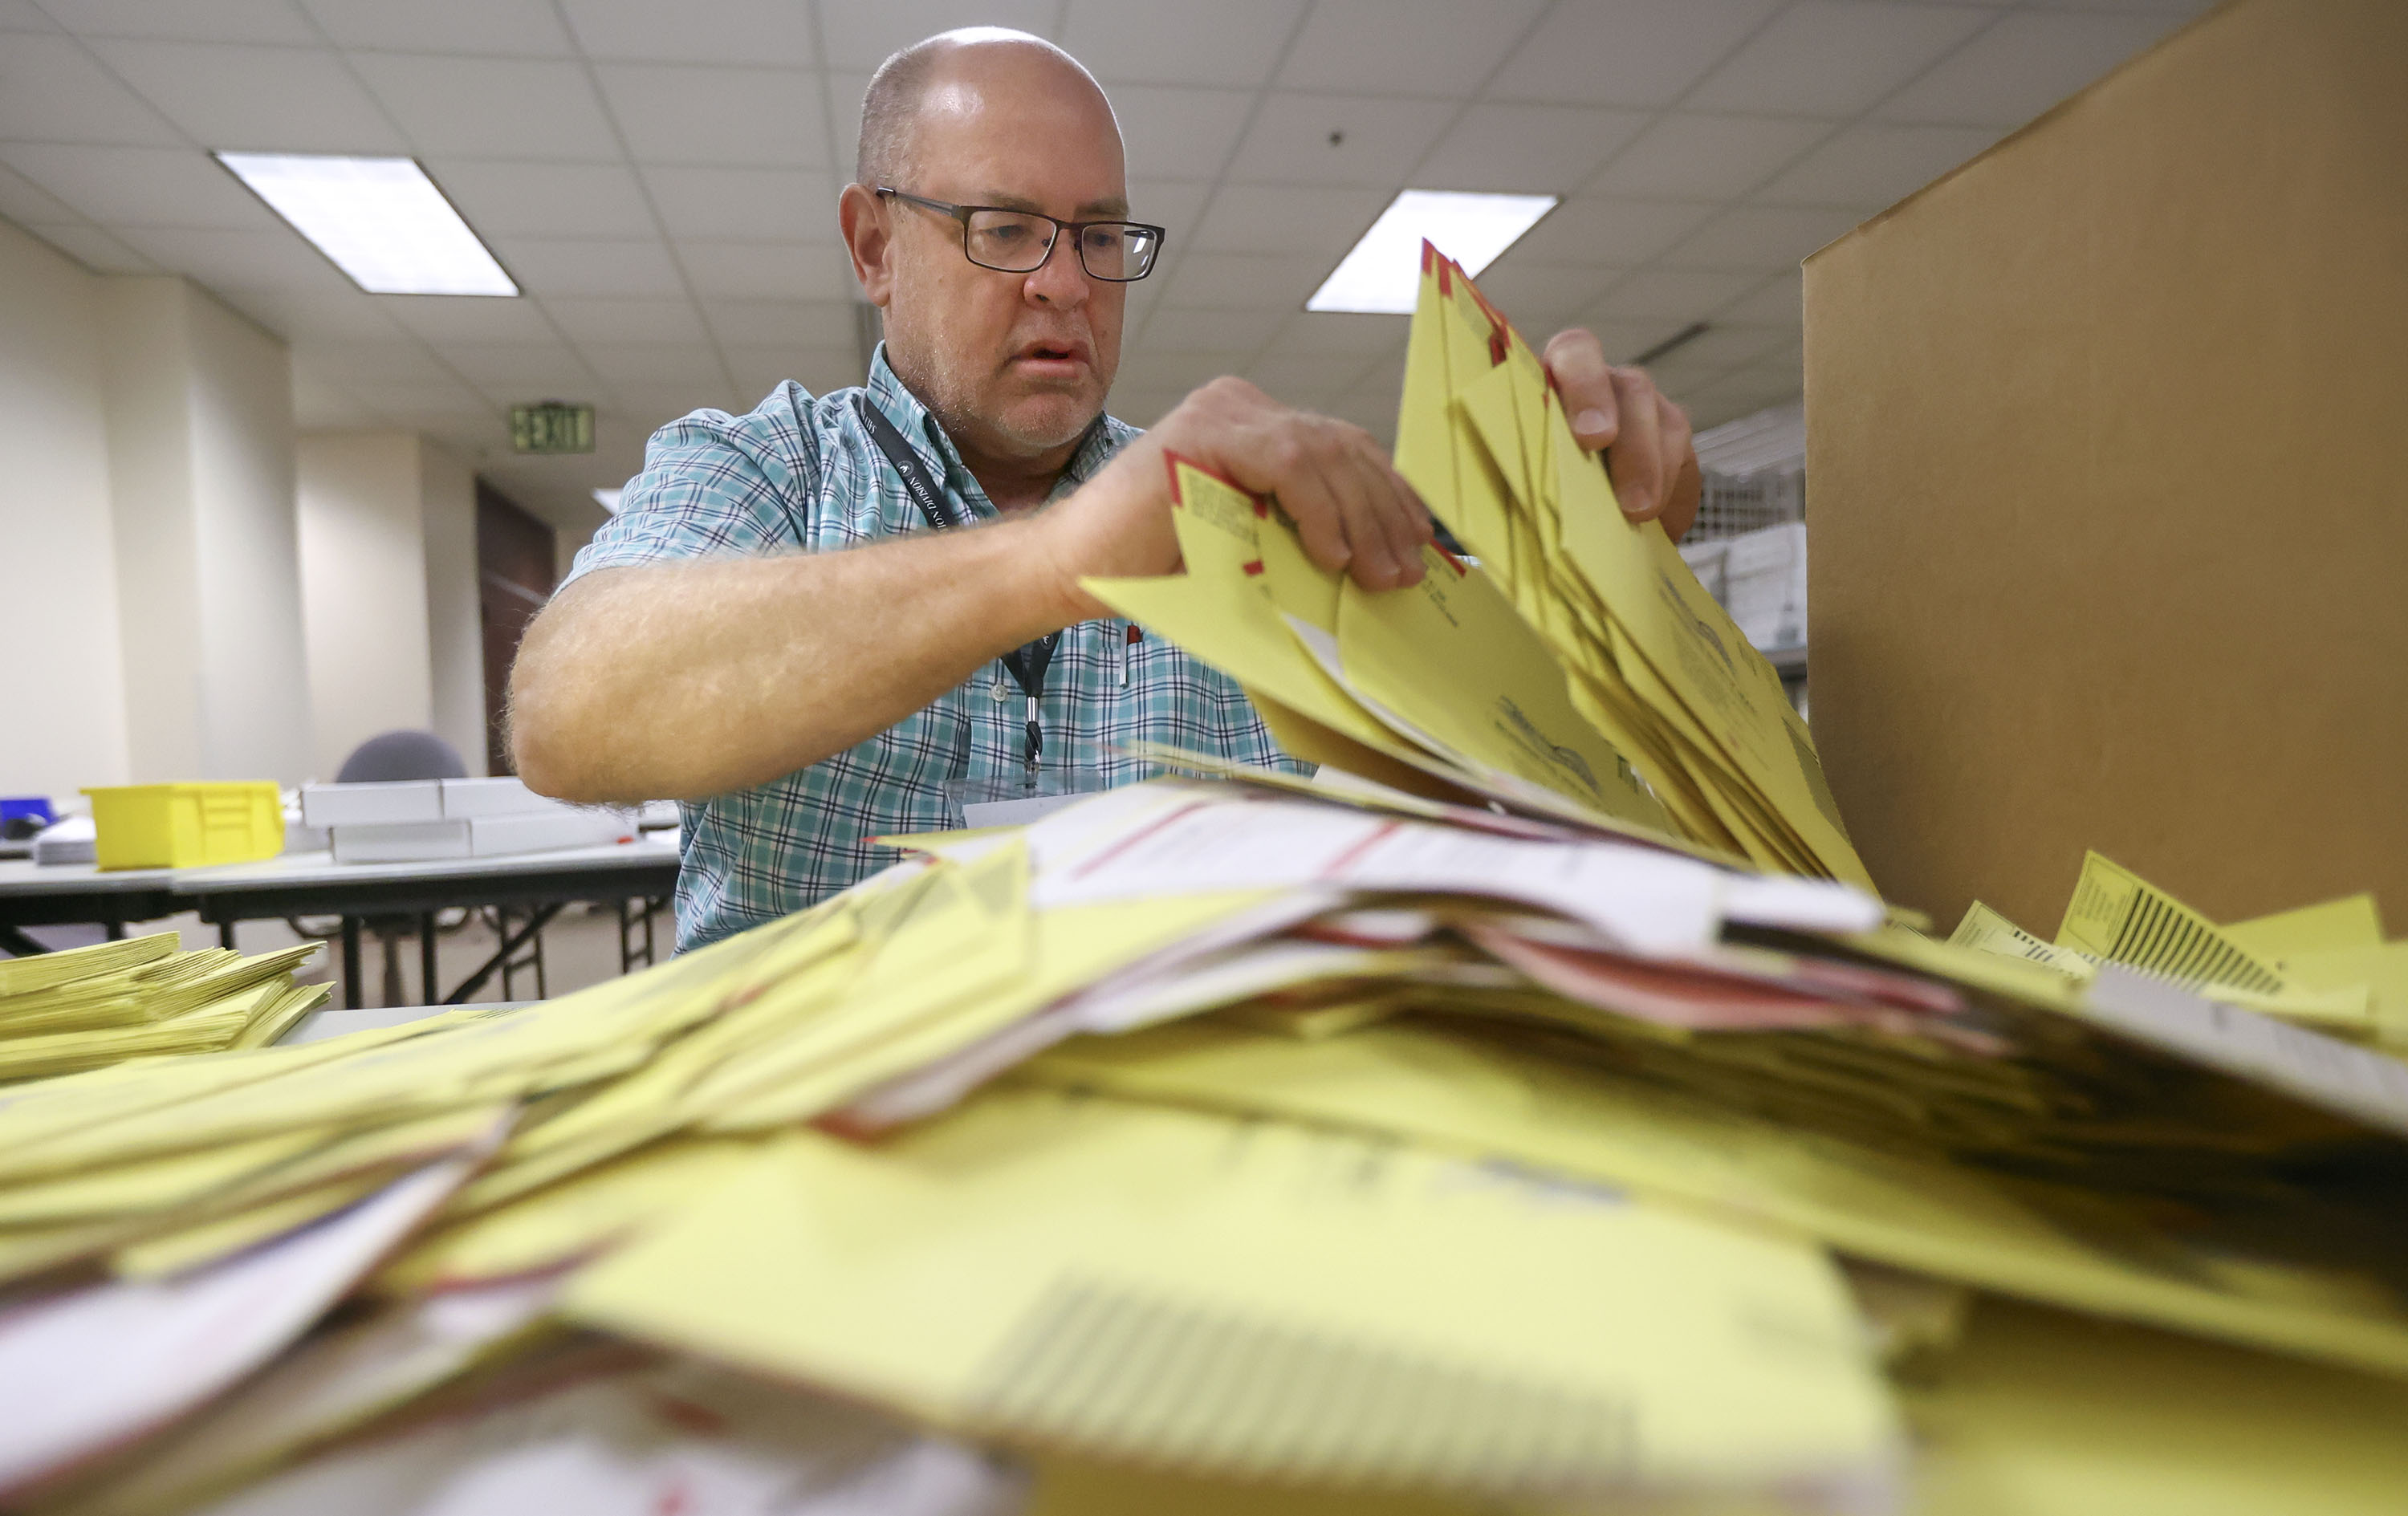 Elections coordinator Michael Fife gathers election envelopes at the Salt Lake County Government Center in Salt Lake City on Tuesday, Aug. 10, 2021.